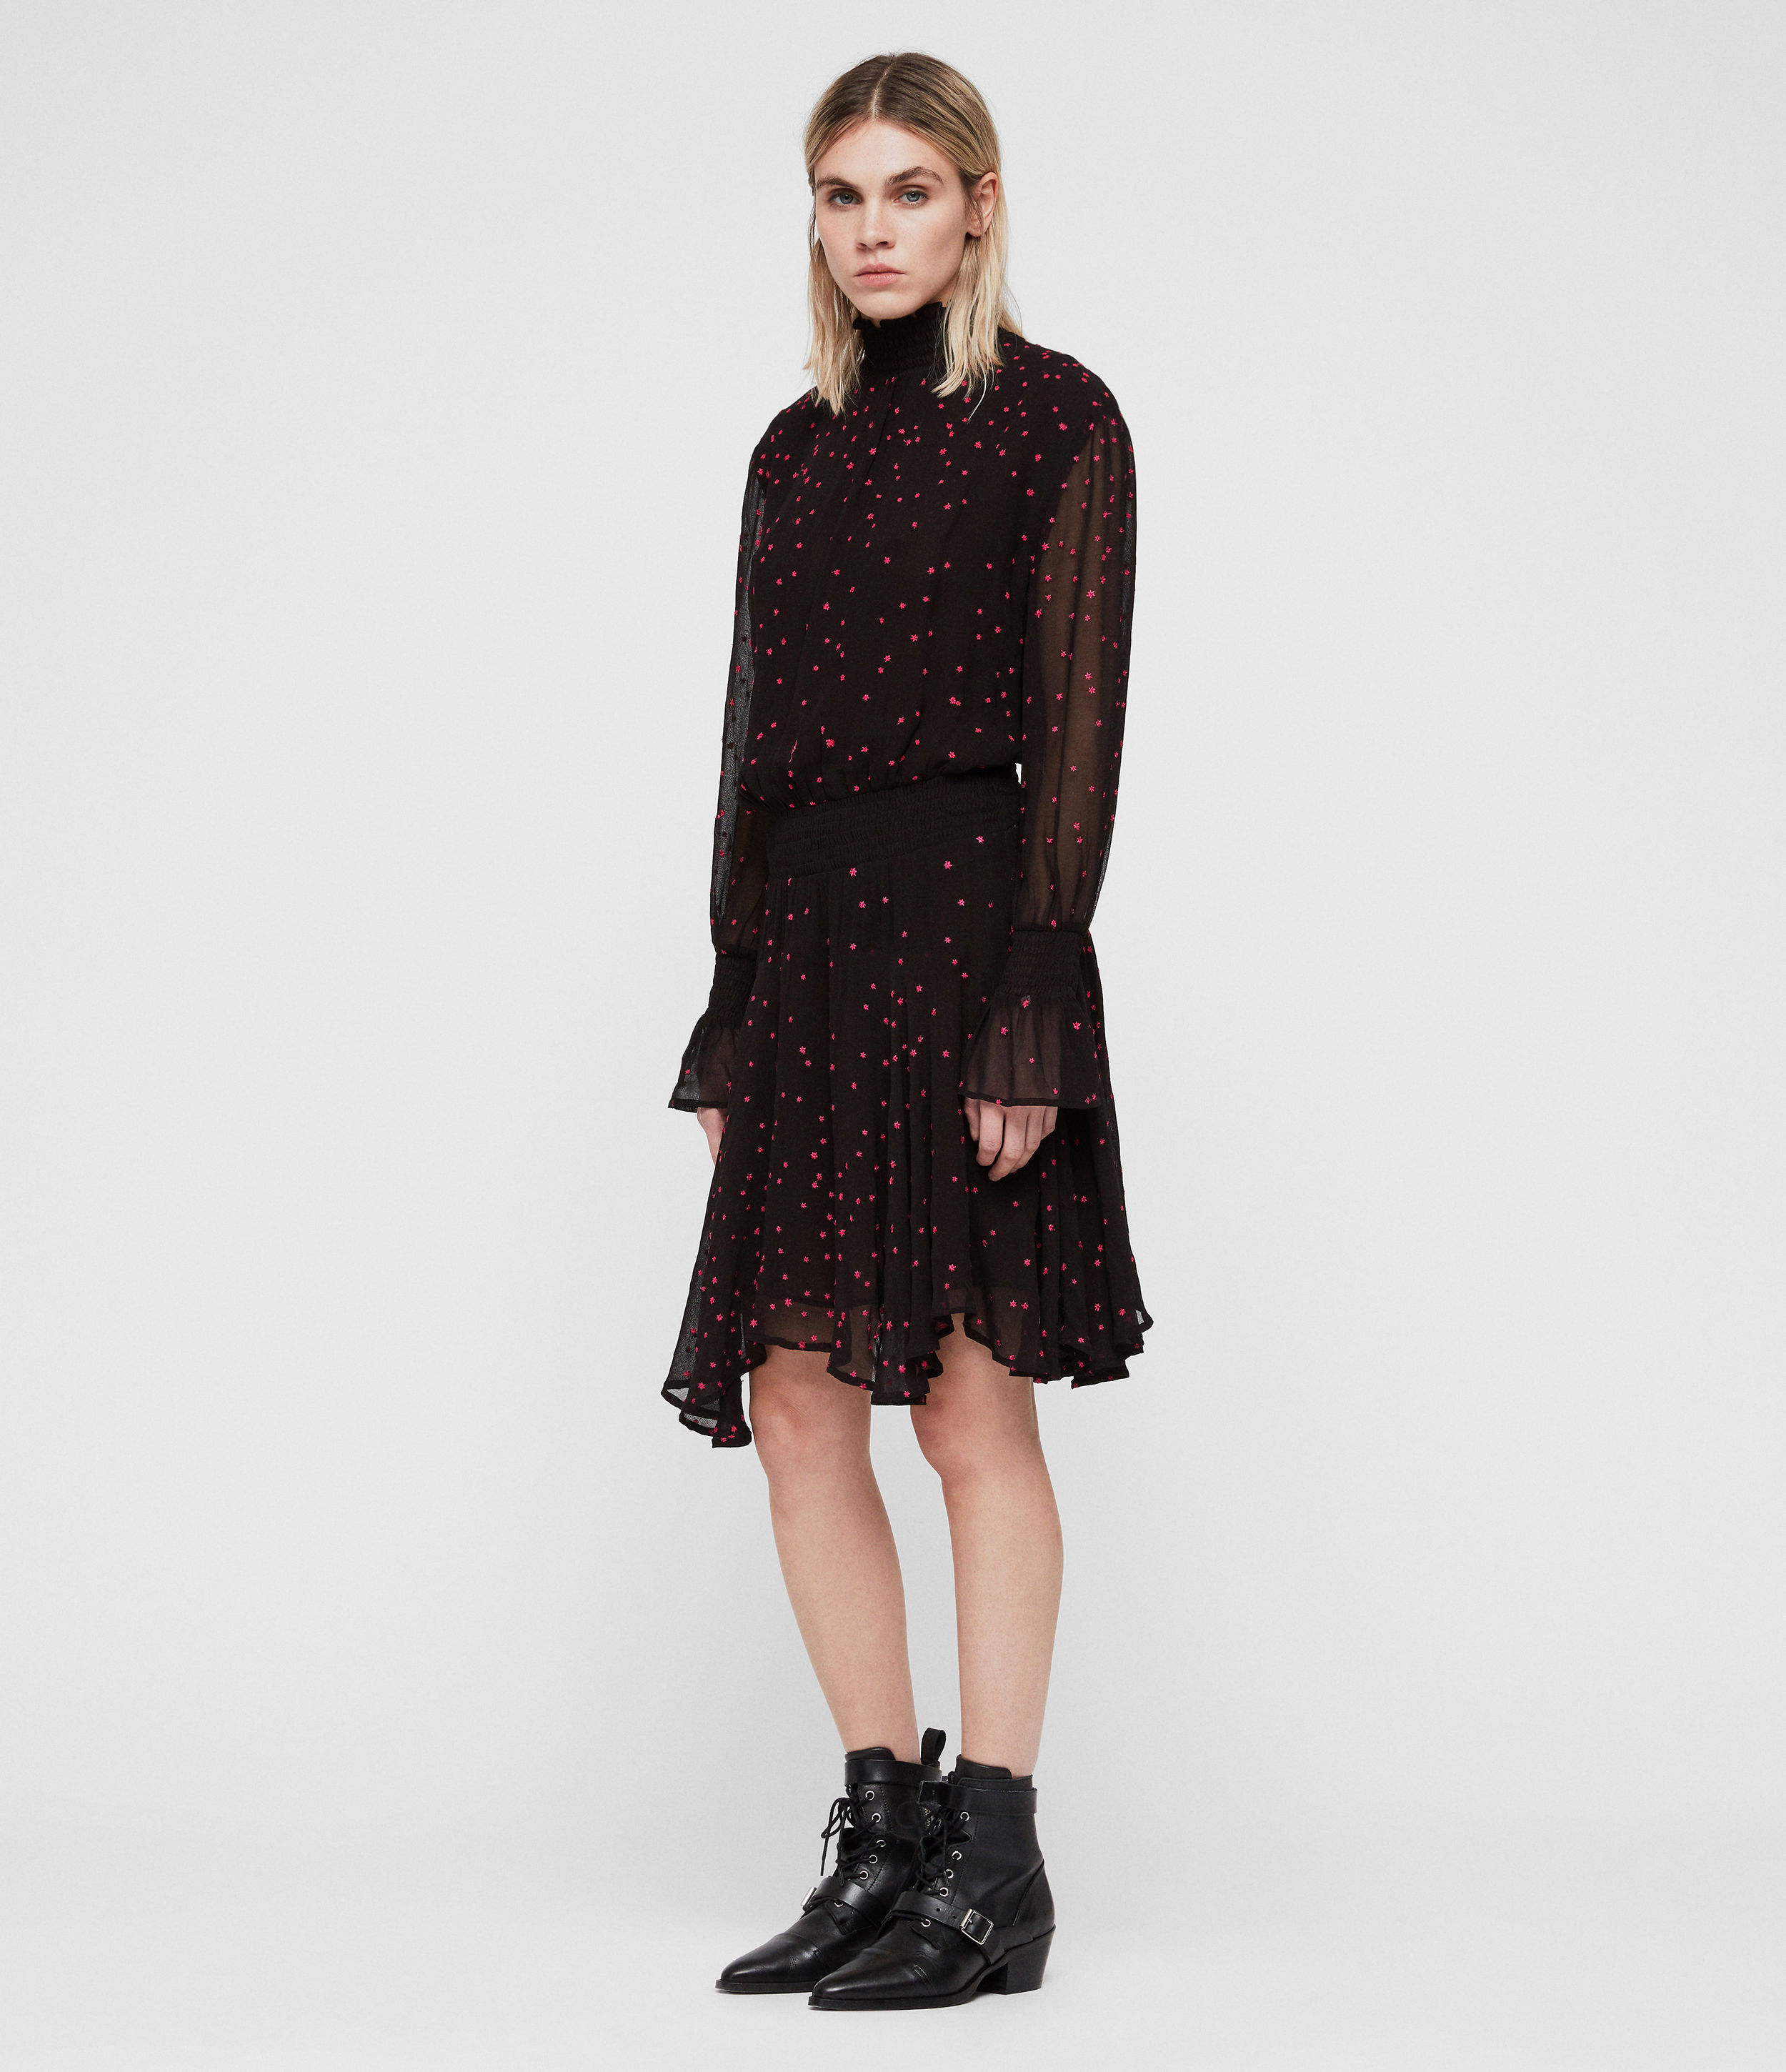 AllSaints Ria Nala Dress